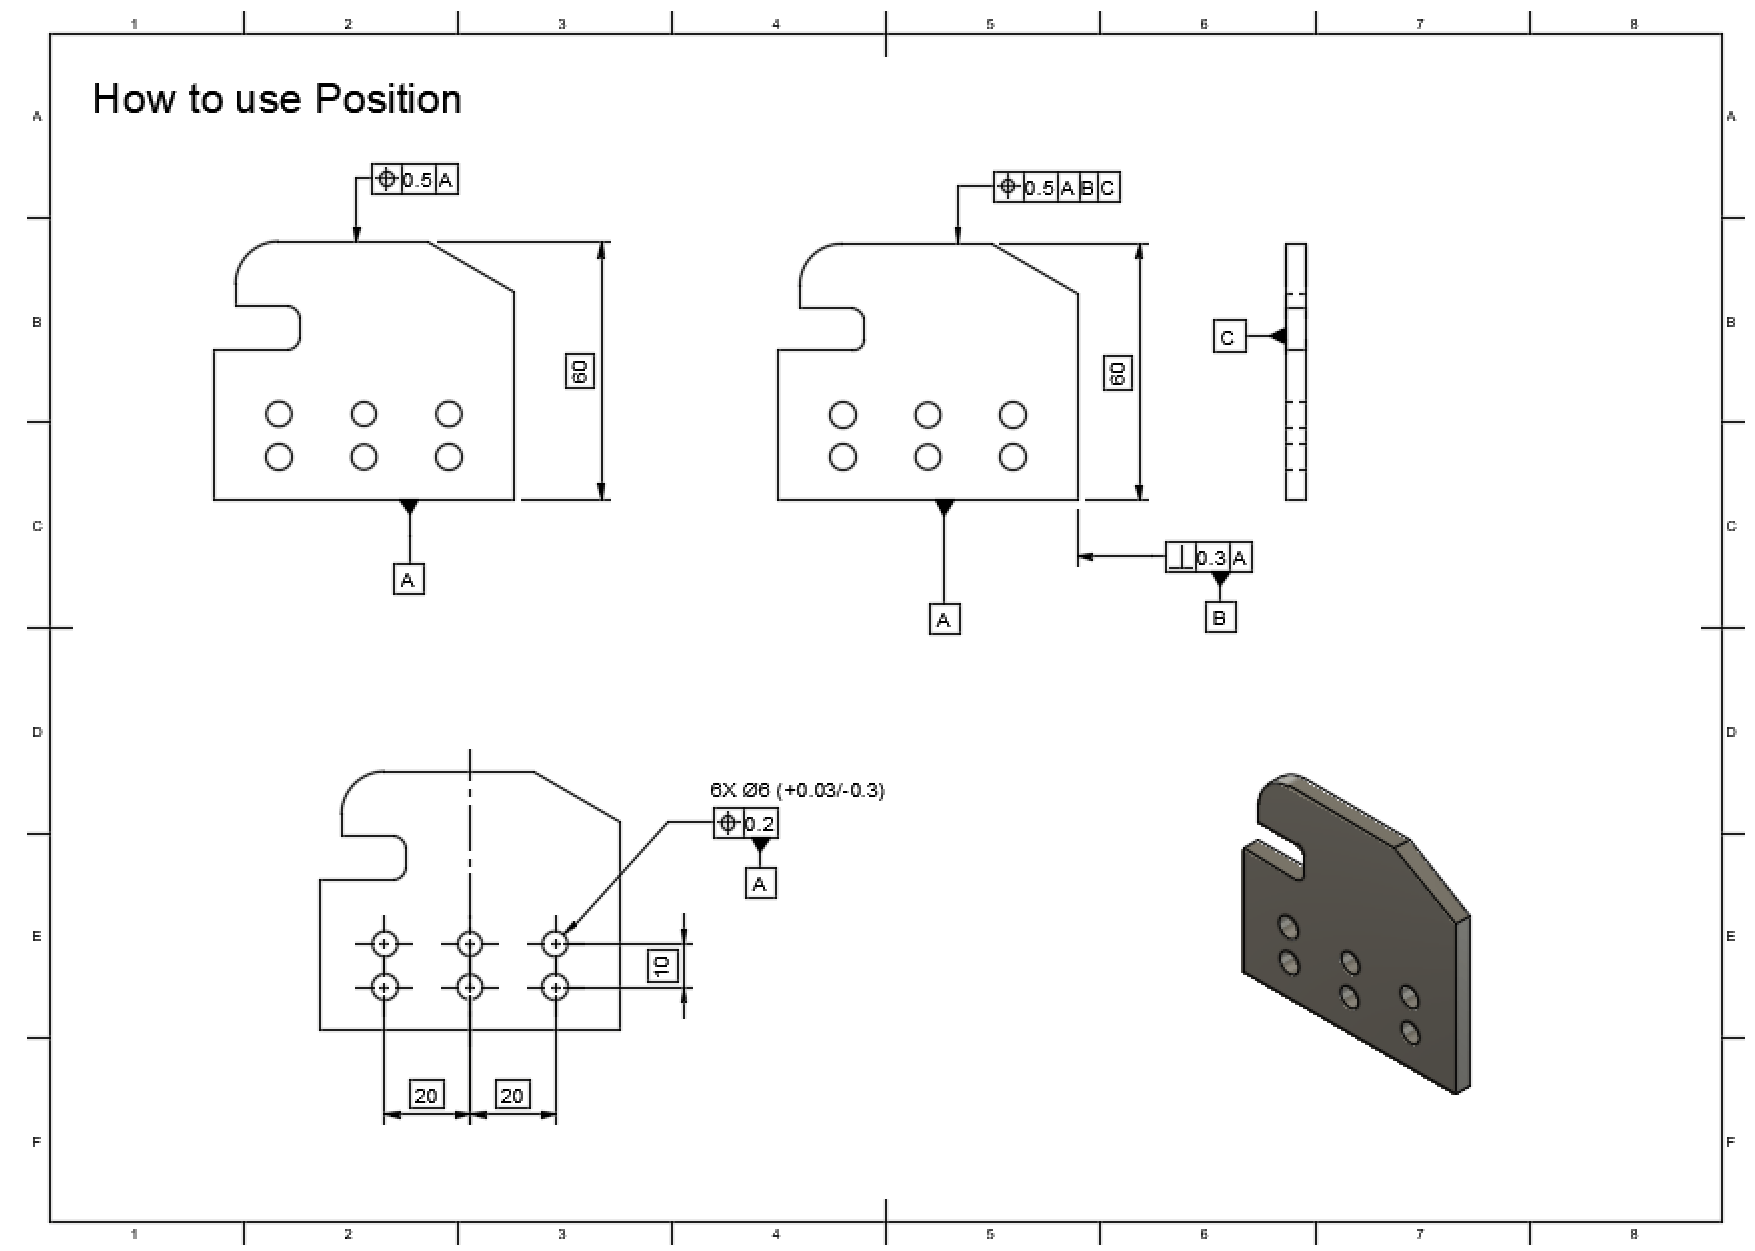 Geometric Dimensioning & Tolerancing: Position > MechApe